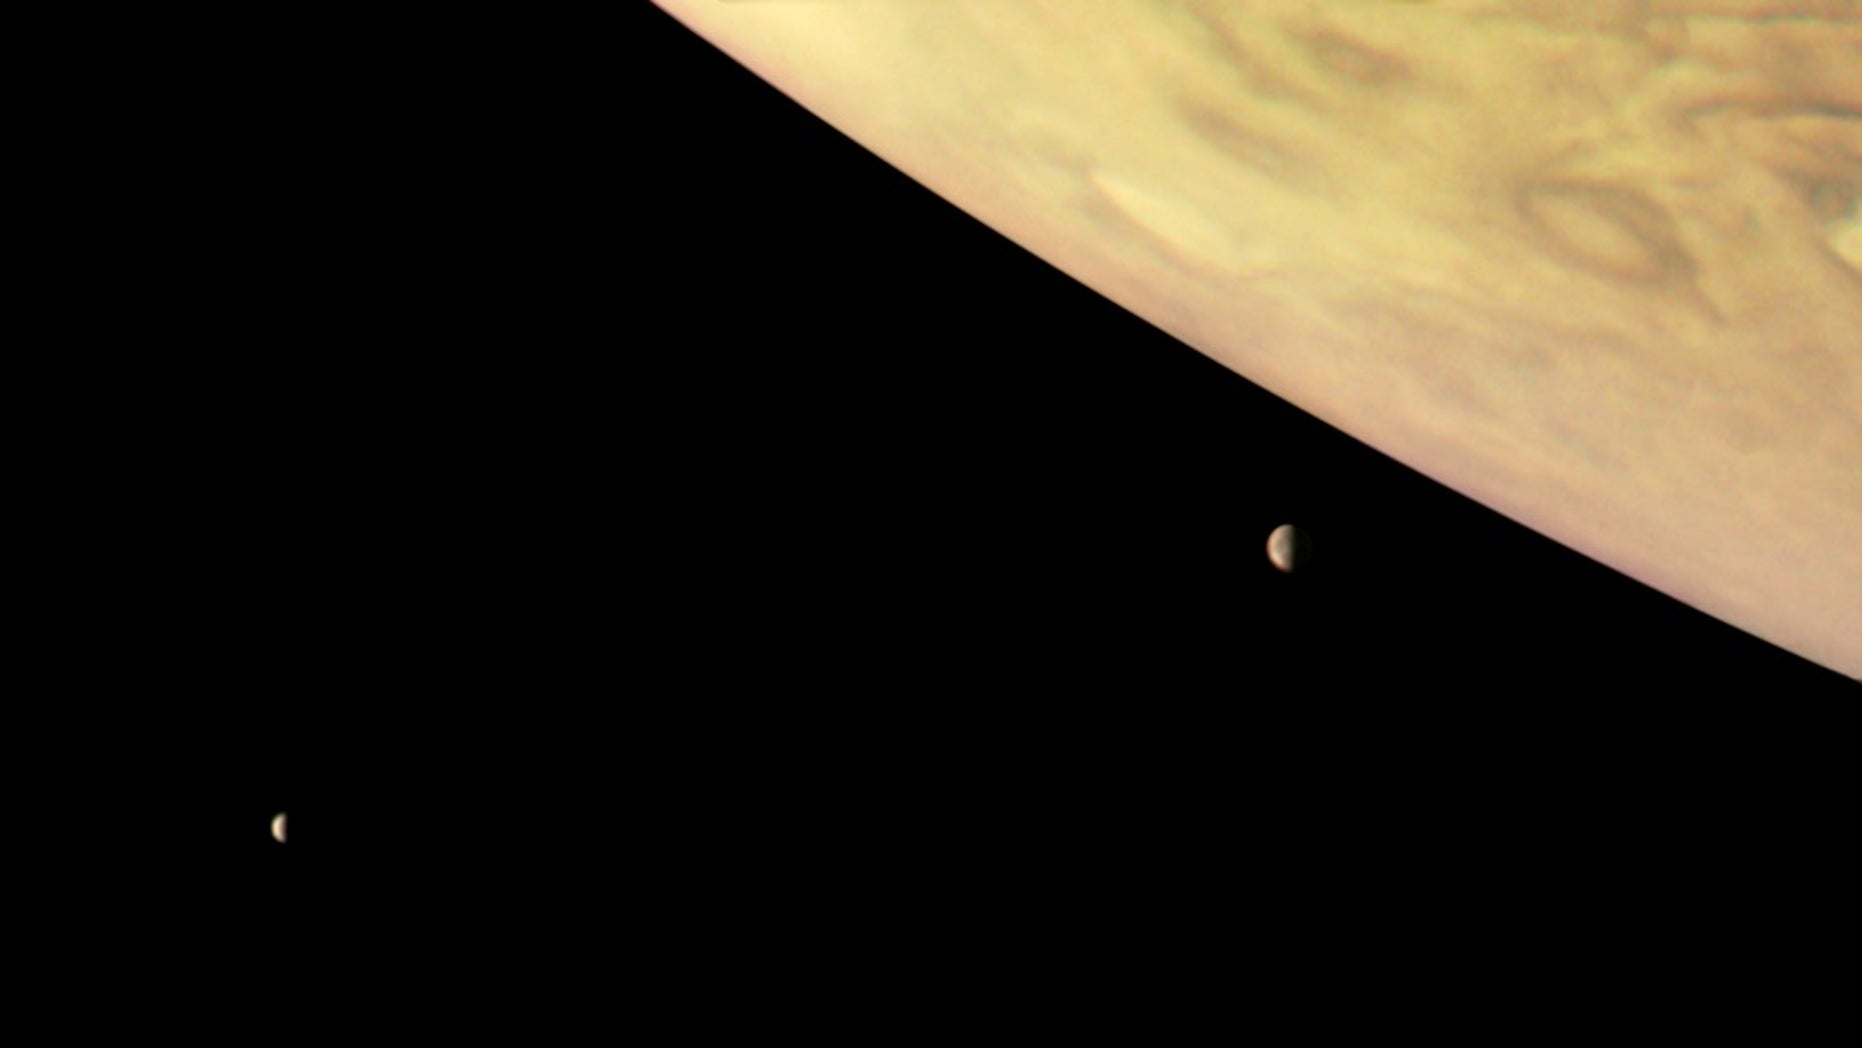 NASA's Juno spacecraft captured this image of Jupiter and two of its biggest moons, Io (right) and Europa (left), on Sept. 1, 2017. This color-enhanced version was processed by citizen scientist Roman Tkachenko using data from the probe's JunoCam imager.